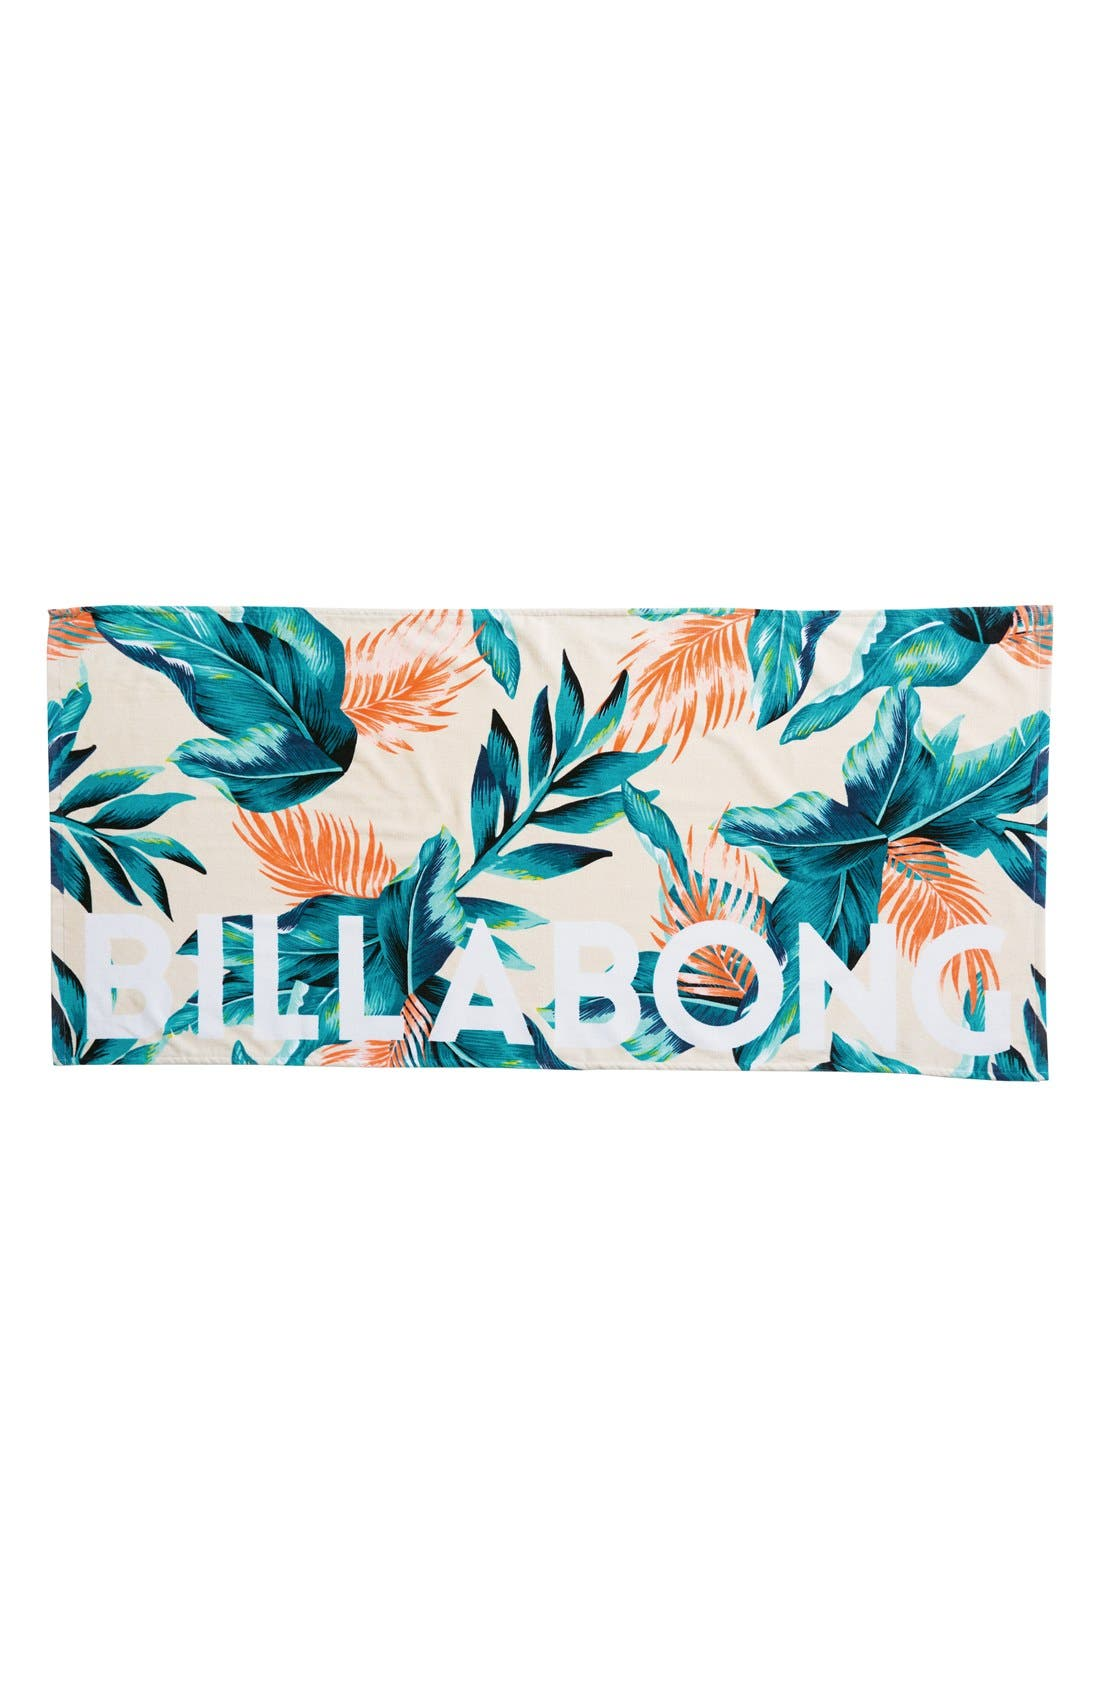 Main Image - Billabong 'Sunset Sounds' Cotton Terry Beach Towel